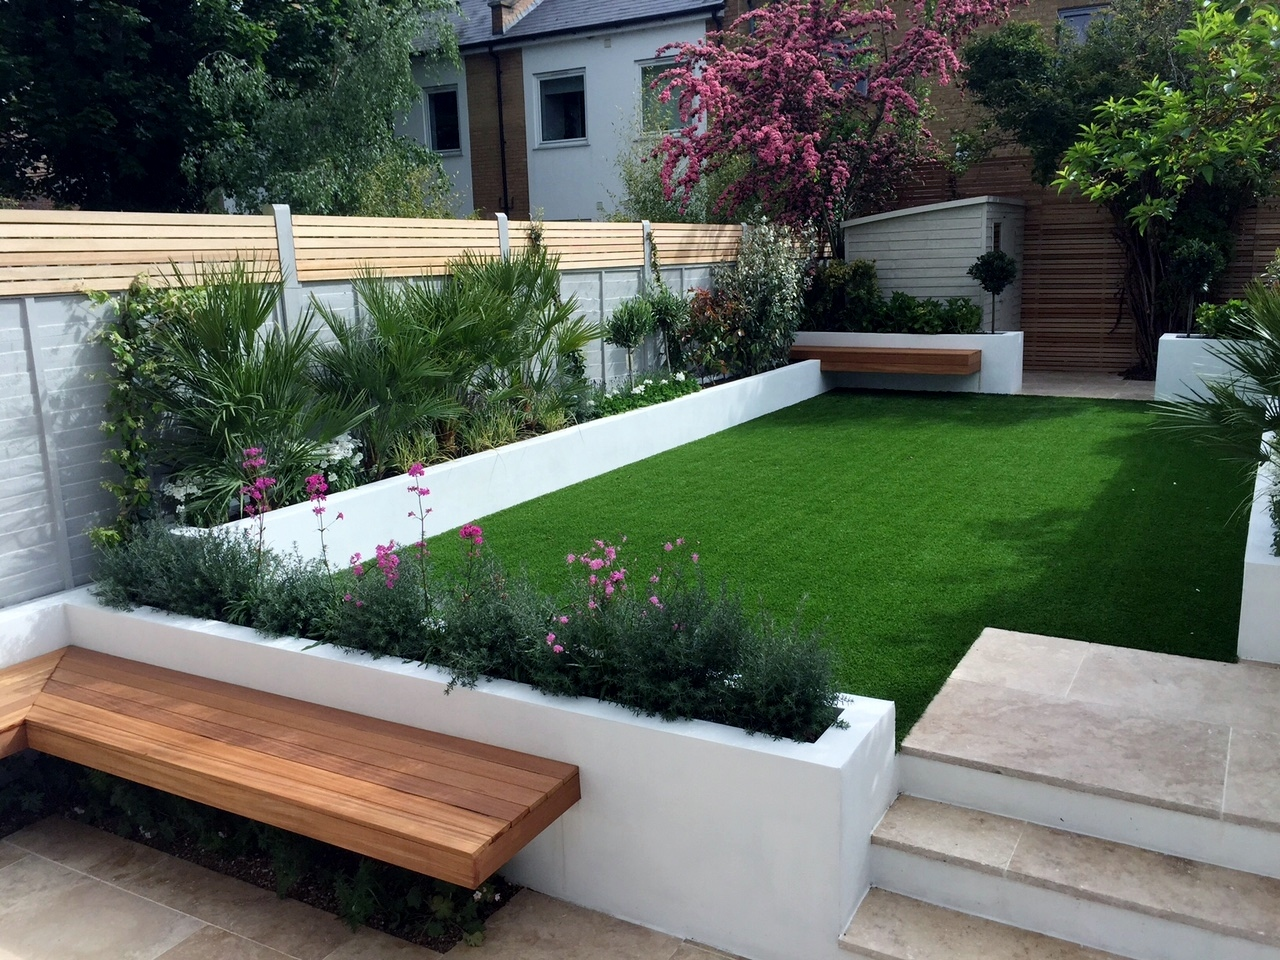 Modern garden design ideas fulham chelsea battersea for Contemporary garden ideas